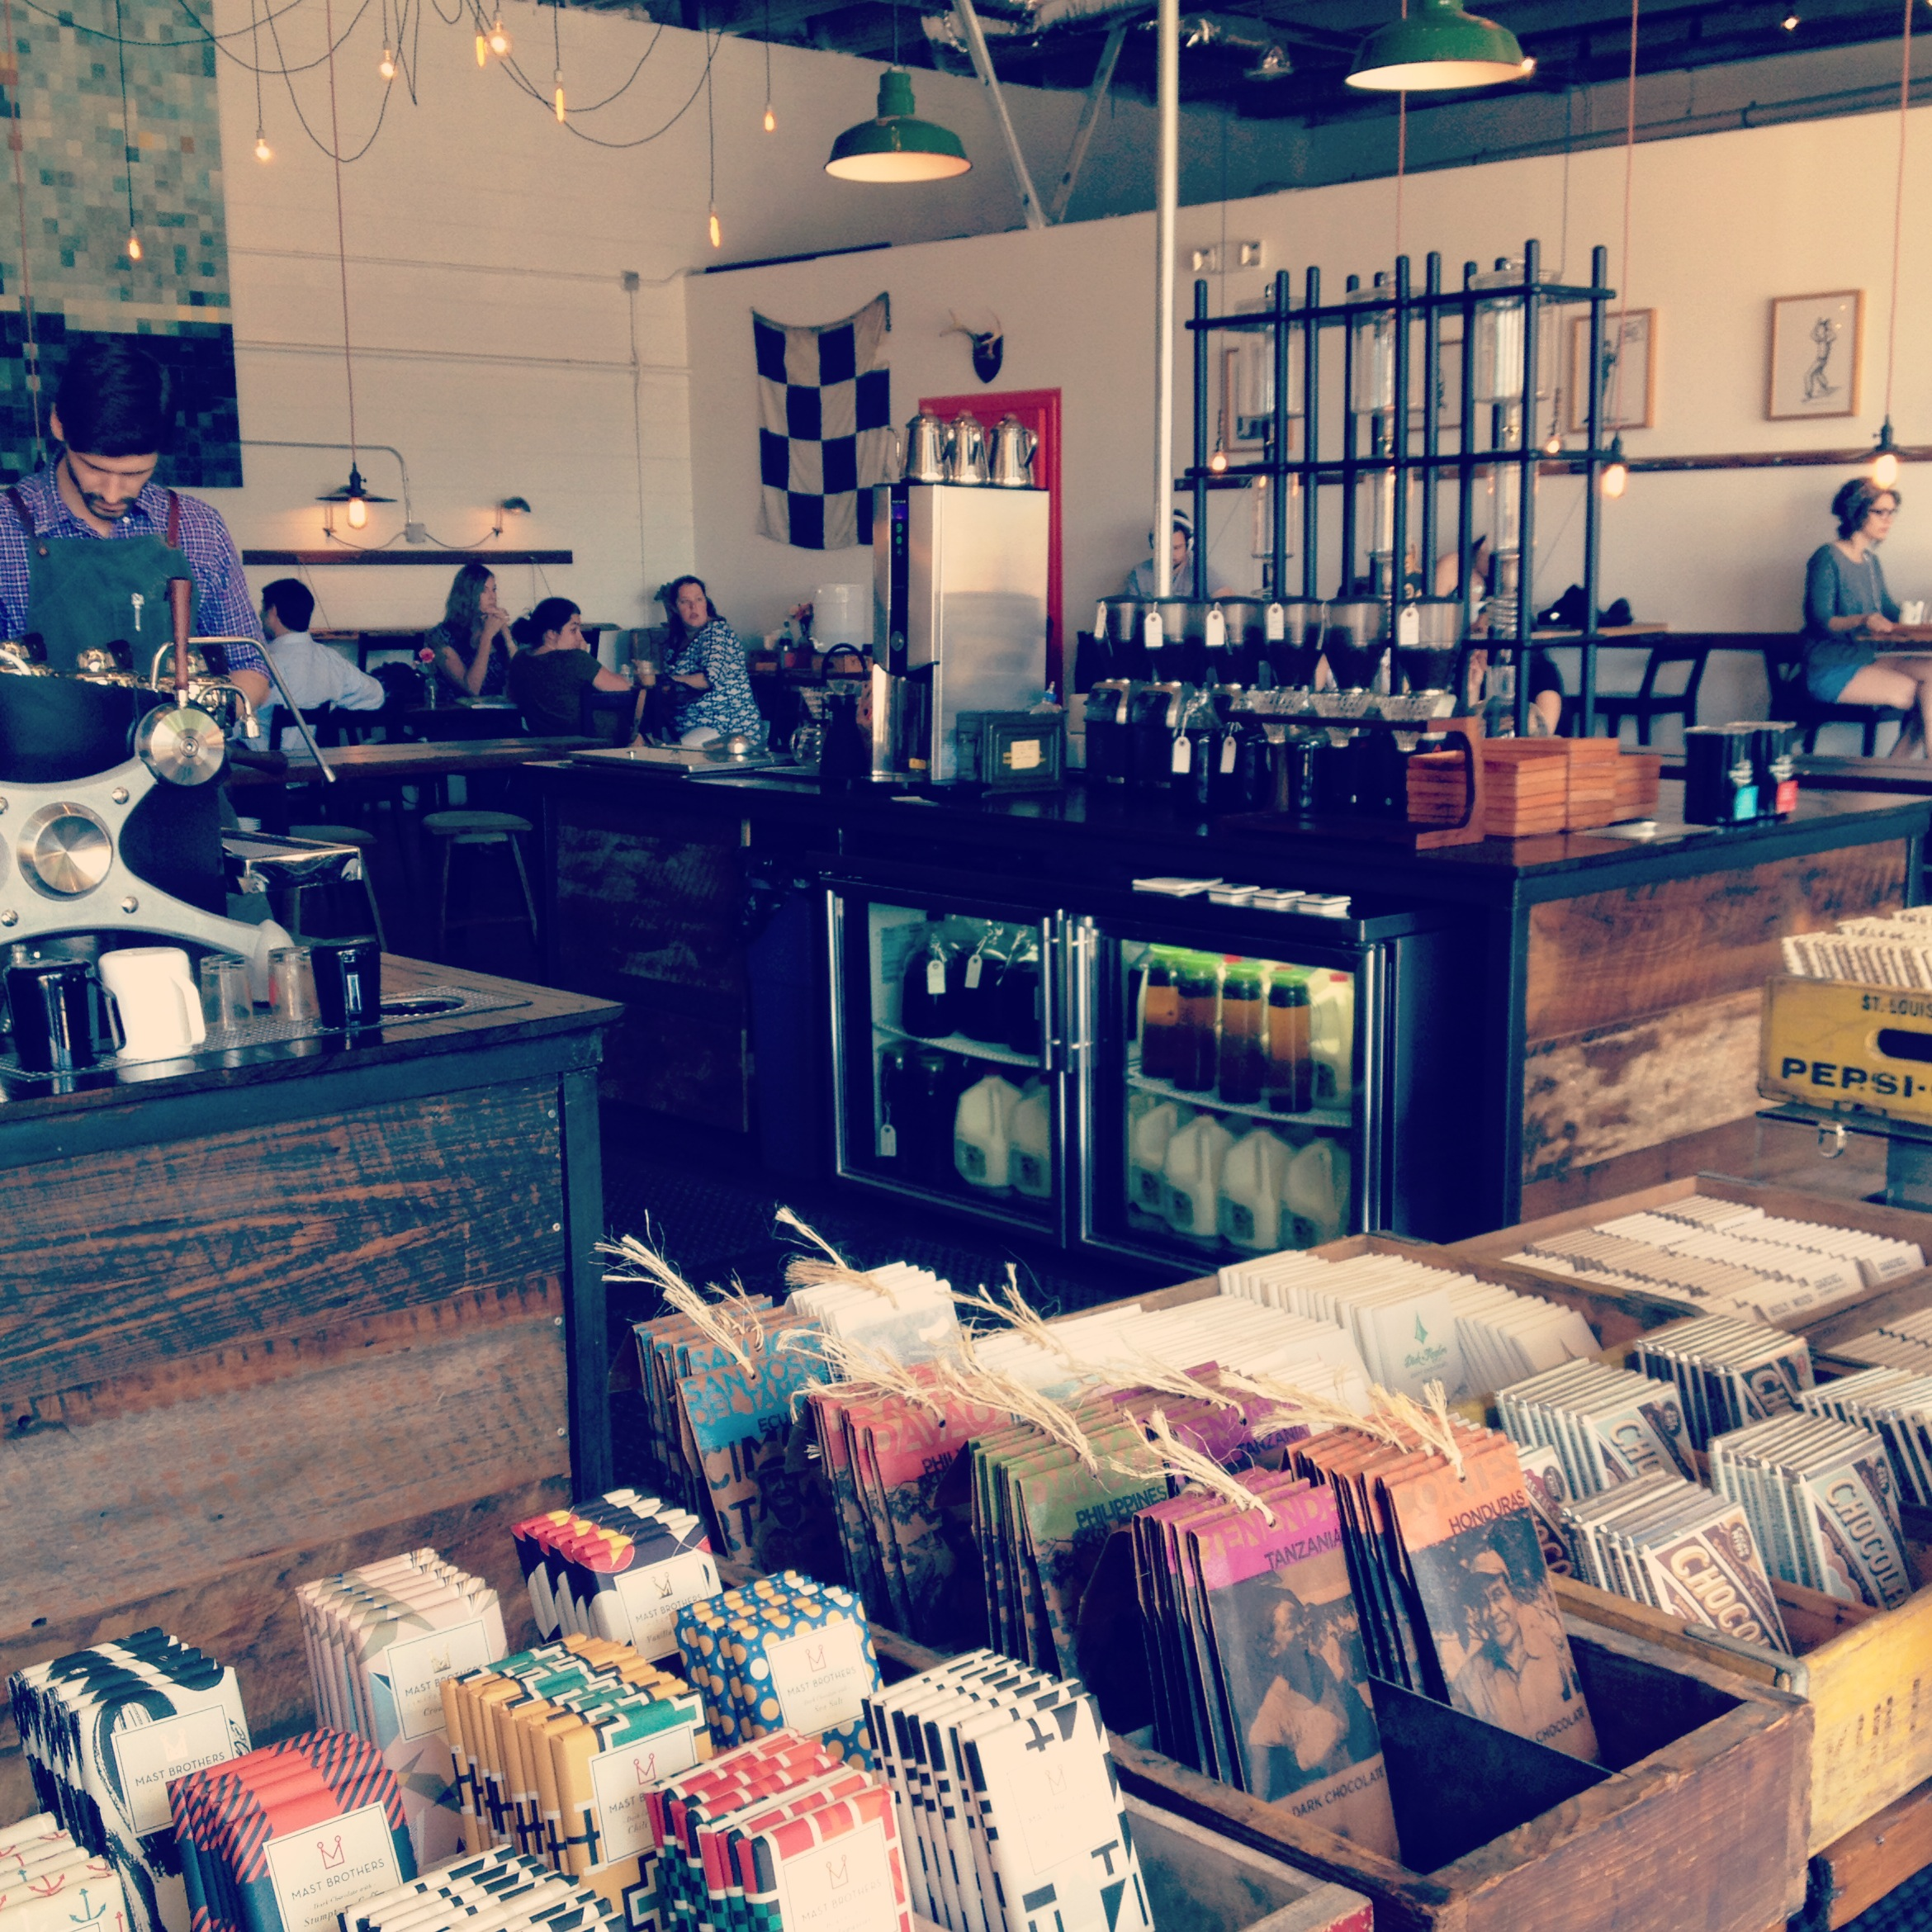 The newly opened Barista Parlor. Love at first sight.